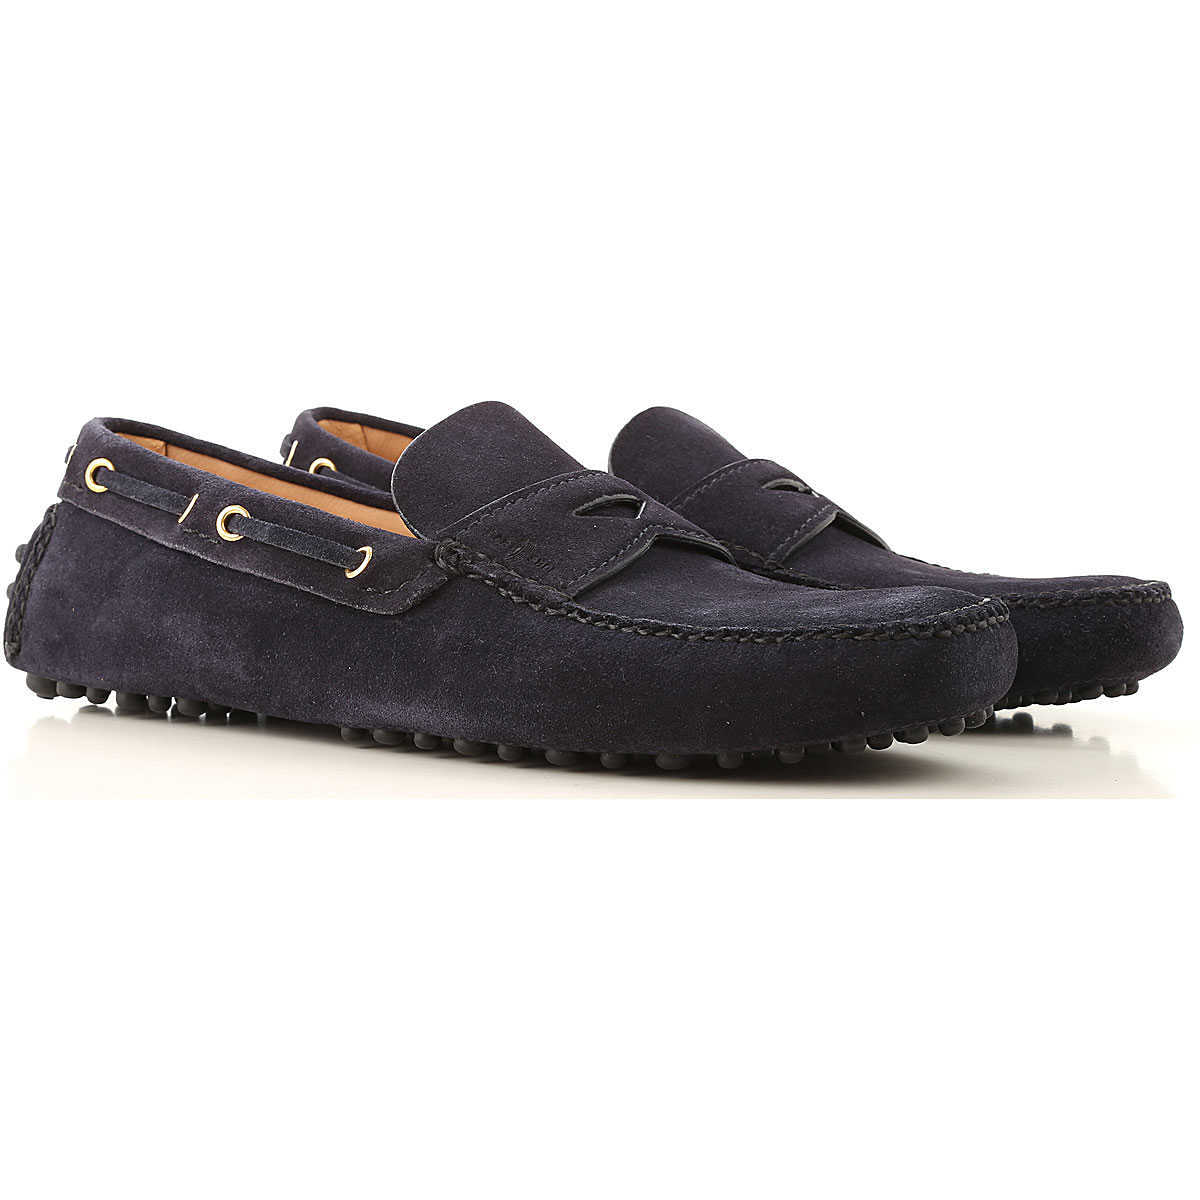 Car Shoe Driver Loafer Shoes for Men Navy Blue Canada - GOOFASH - Mens LOAFERS